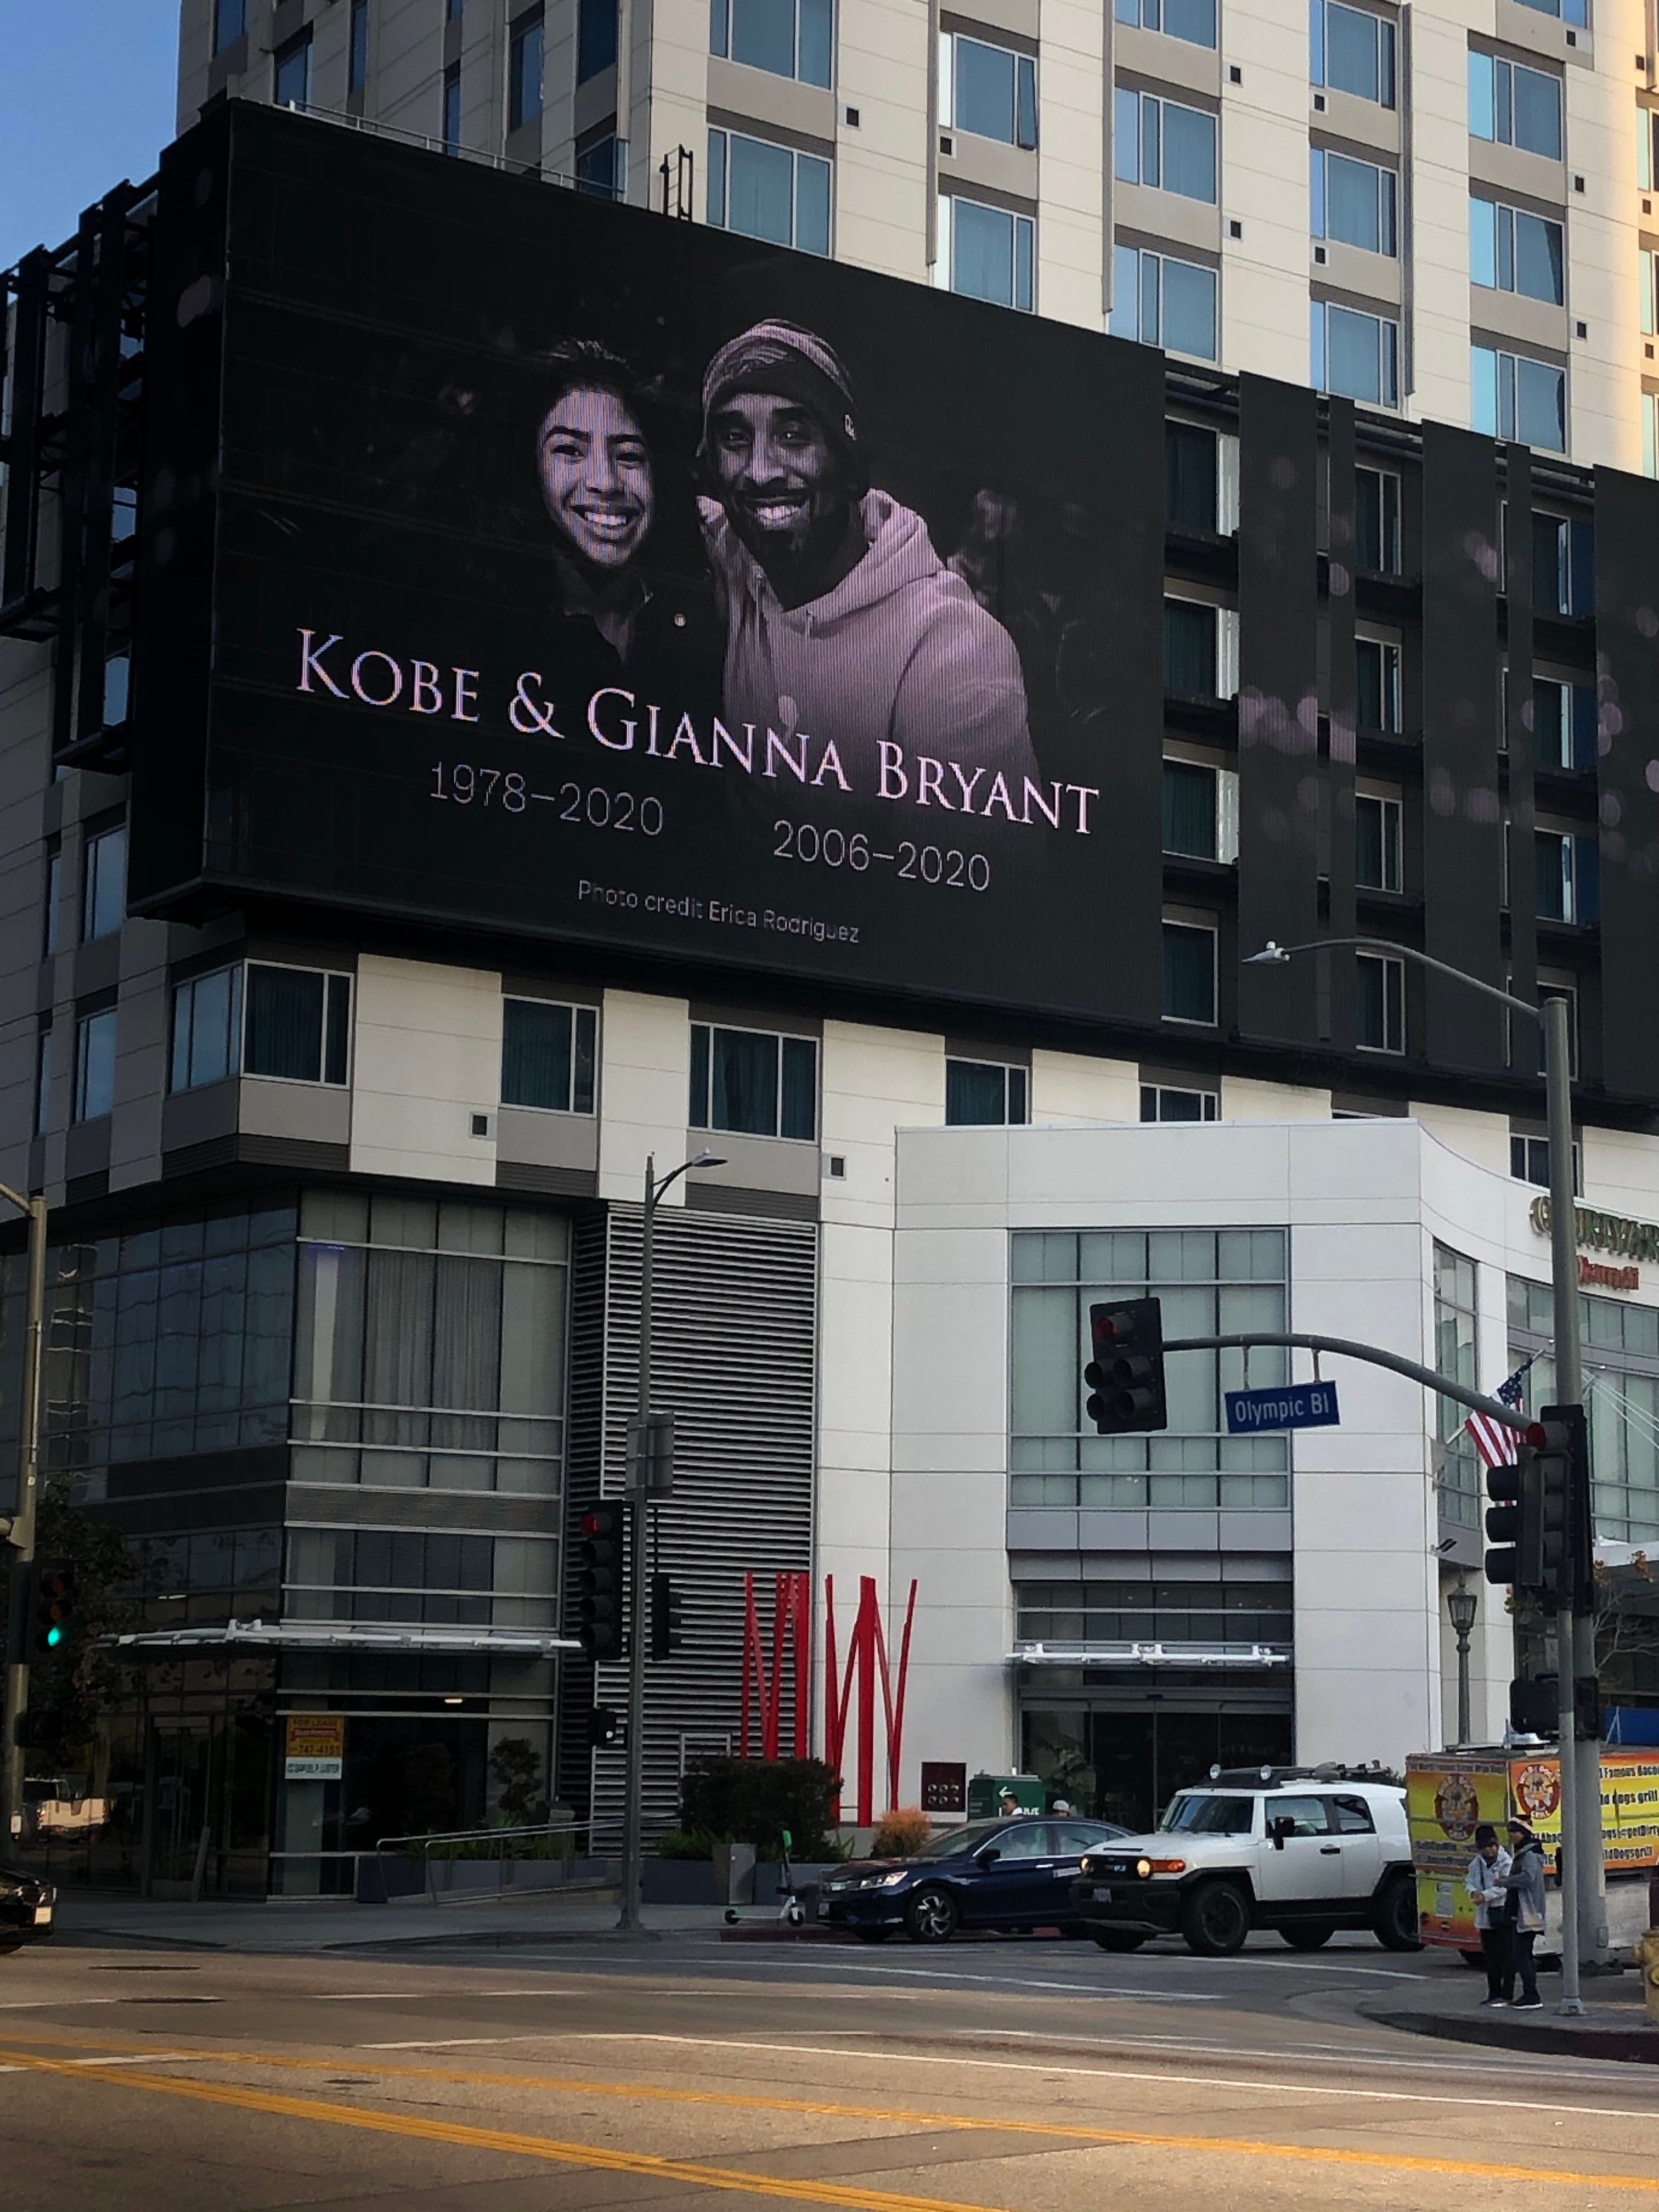 Latest from Kobe Bryant memorial: Emotional ceremony begins at Staples Center